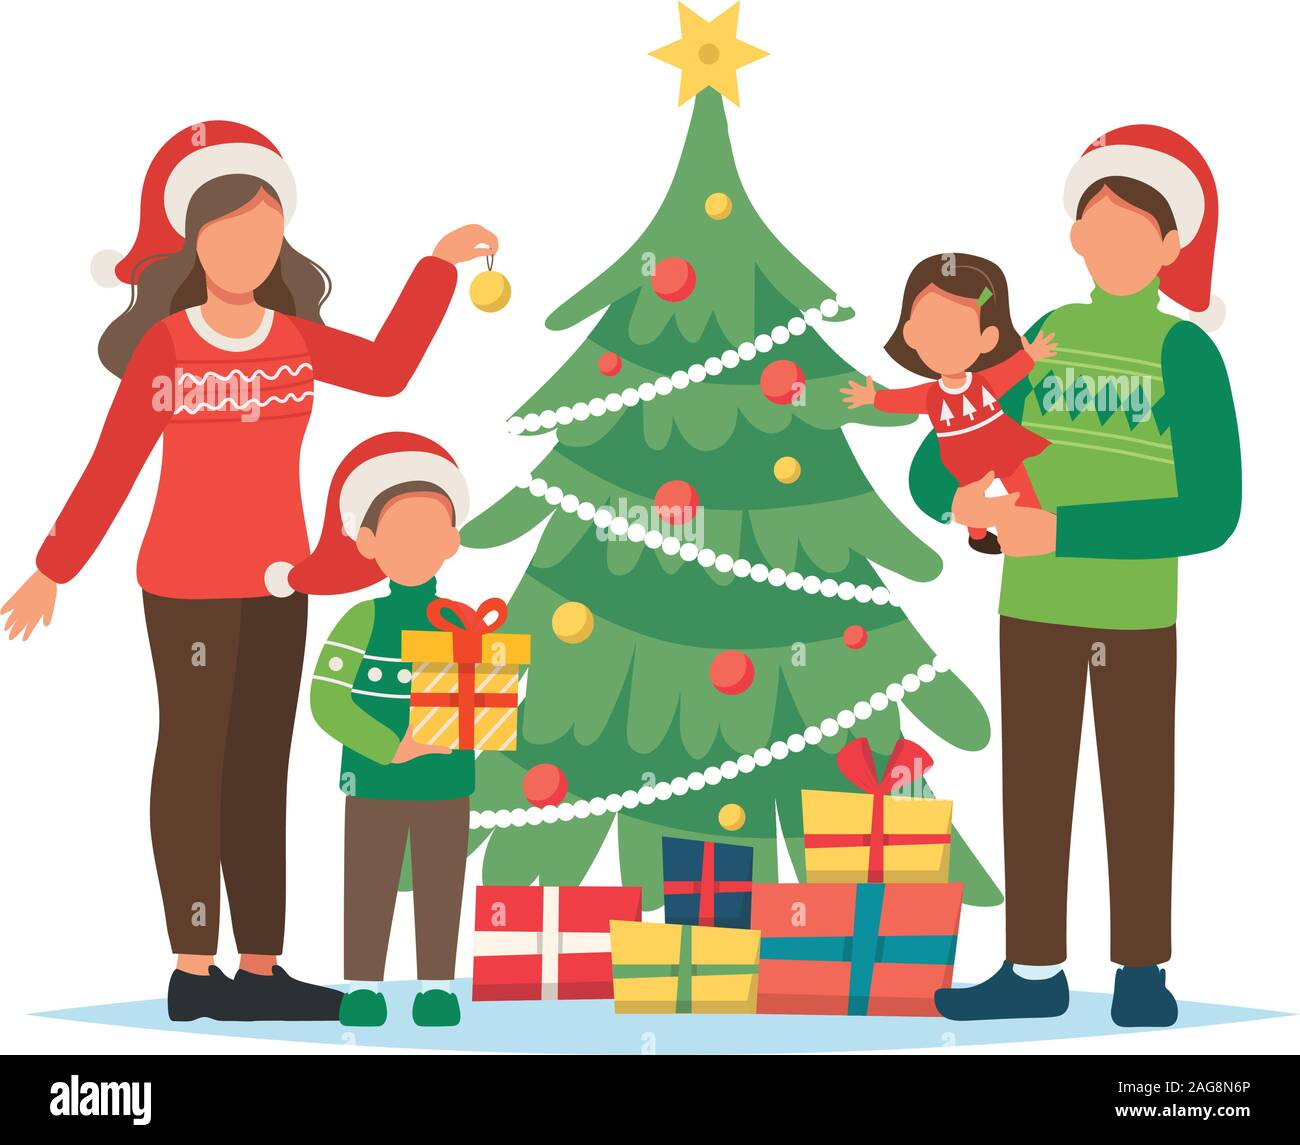 Family Decorating Christmas Tree Cute Vector Illustration In Flat Style Stock Vector Image Art Alamy